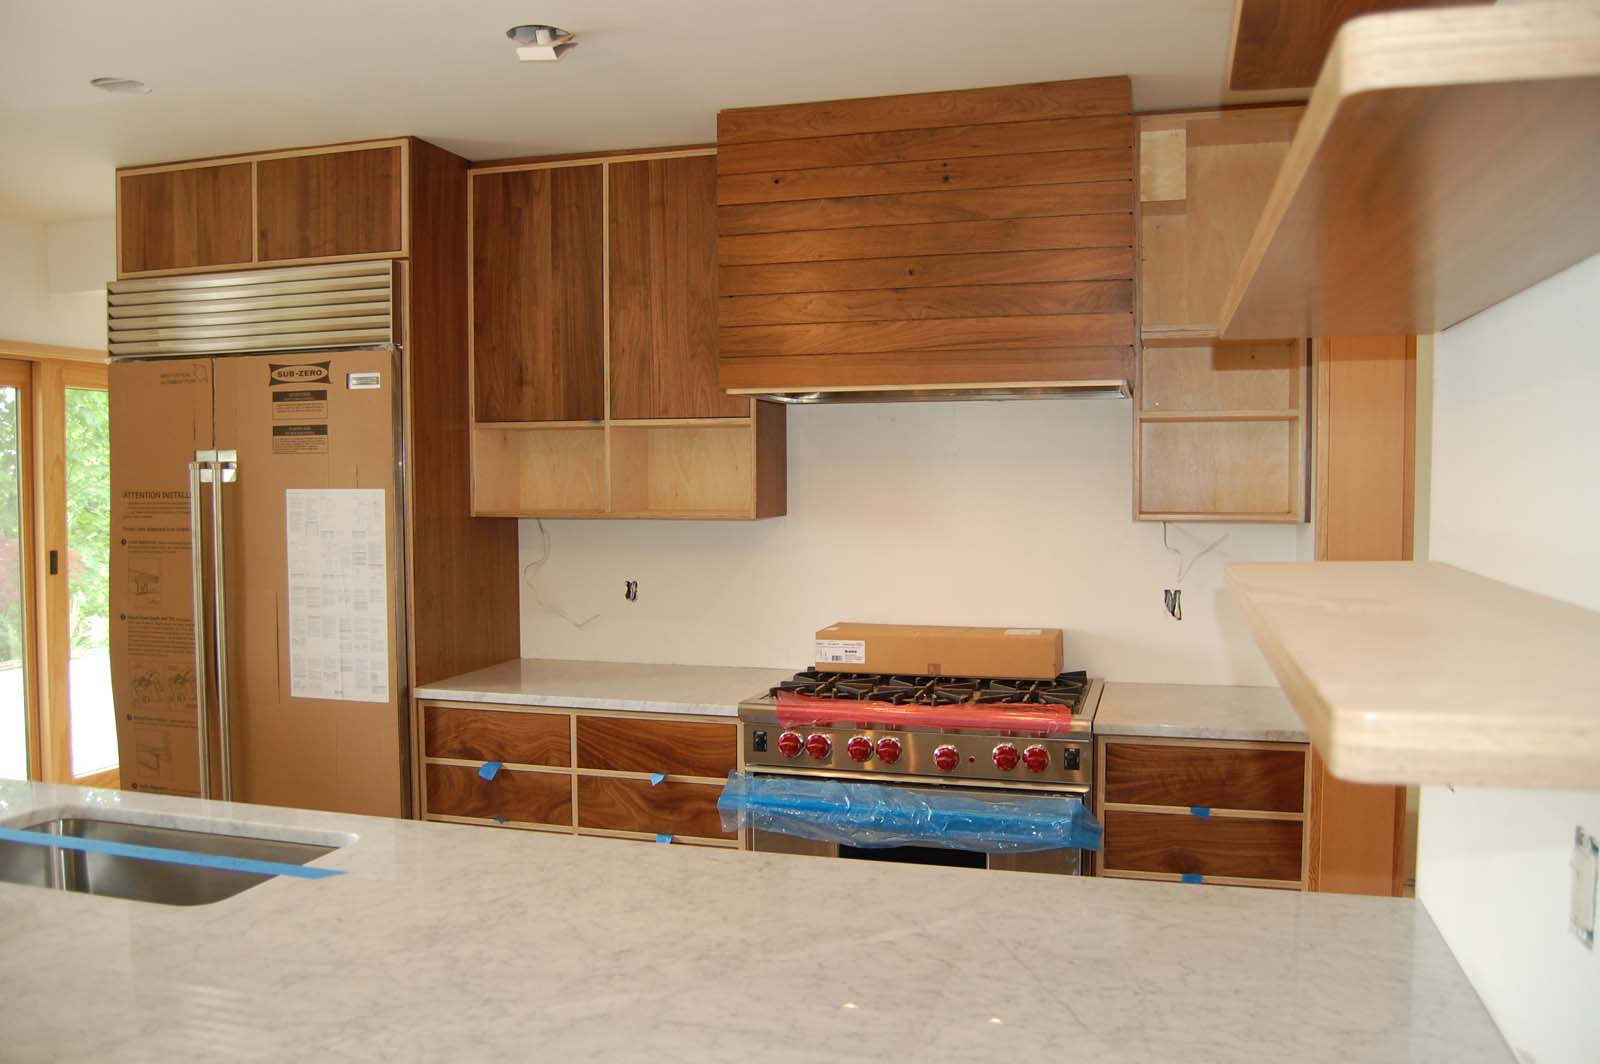 skyline_june_kitchen_02.jpg